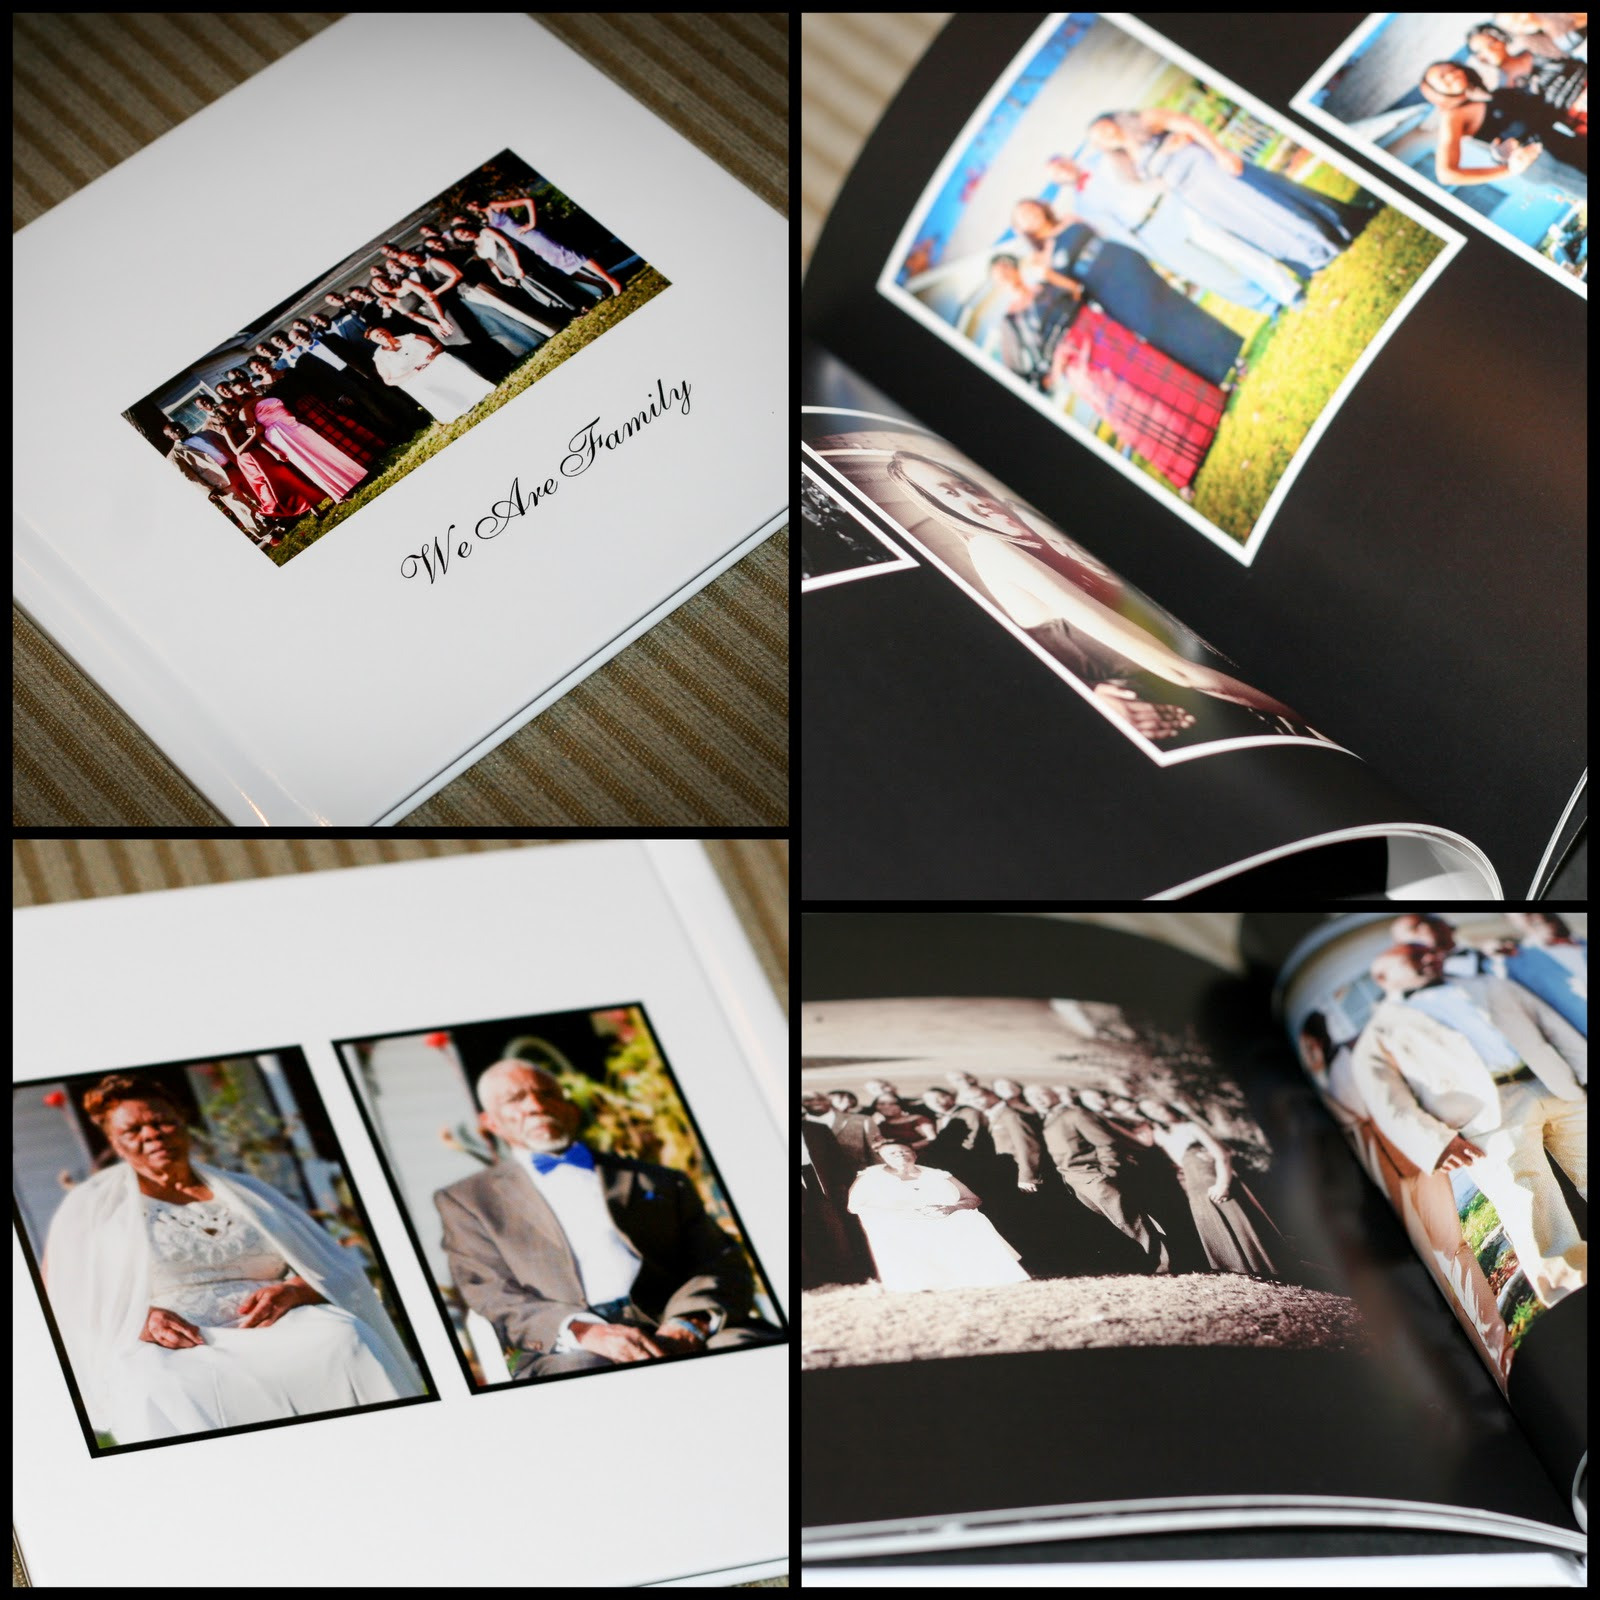 Coffee Book Album: Kandy Pop Photography: CUSTOM ALBUMS & COFFEE TABLE BOOKS